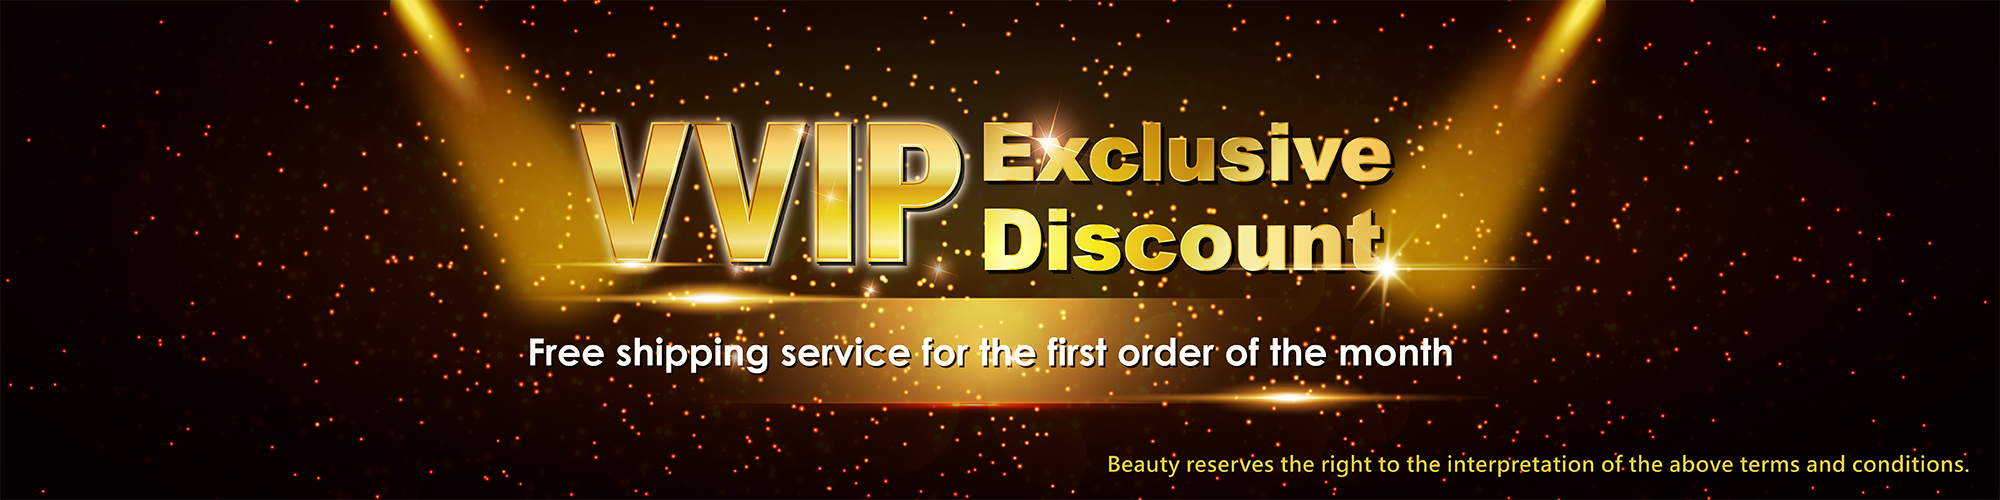 VVIP exclusive discount_2000x500.jpg